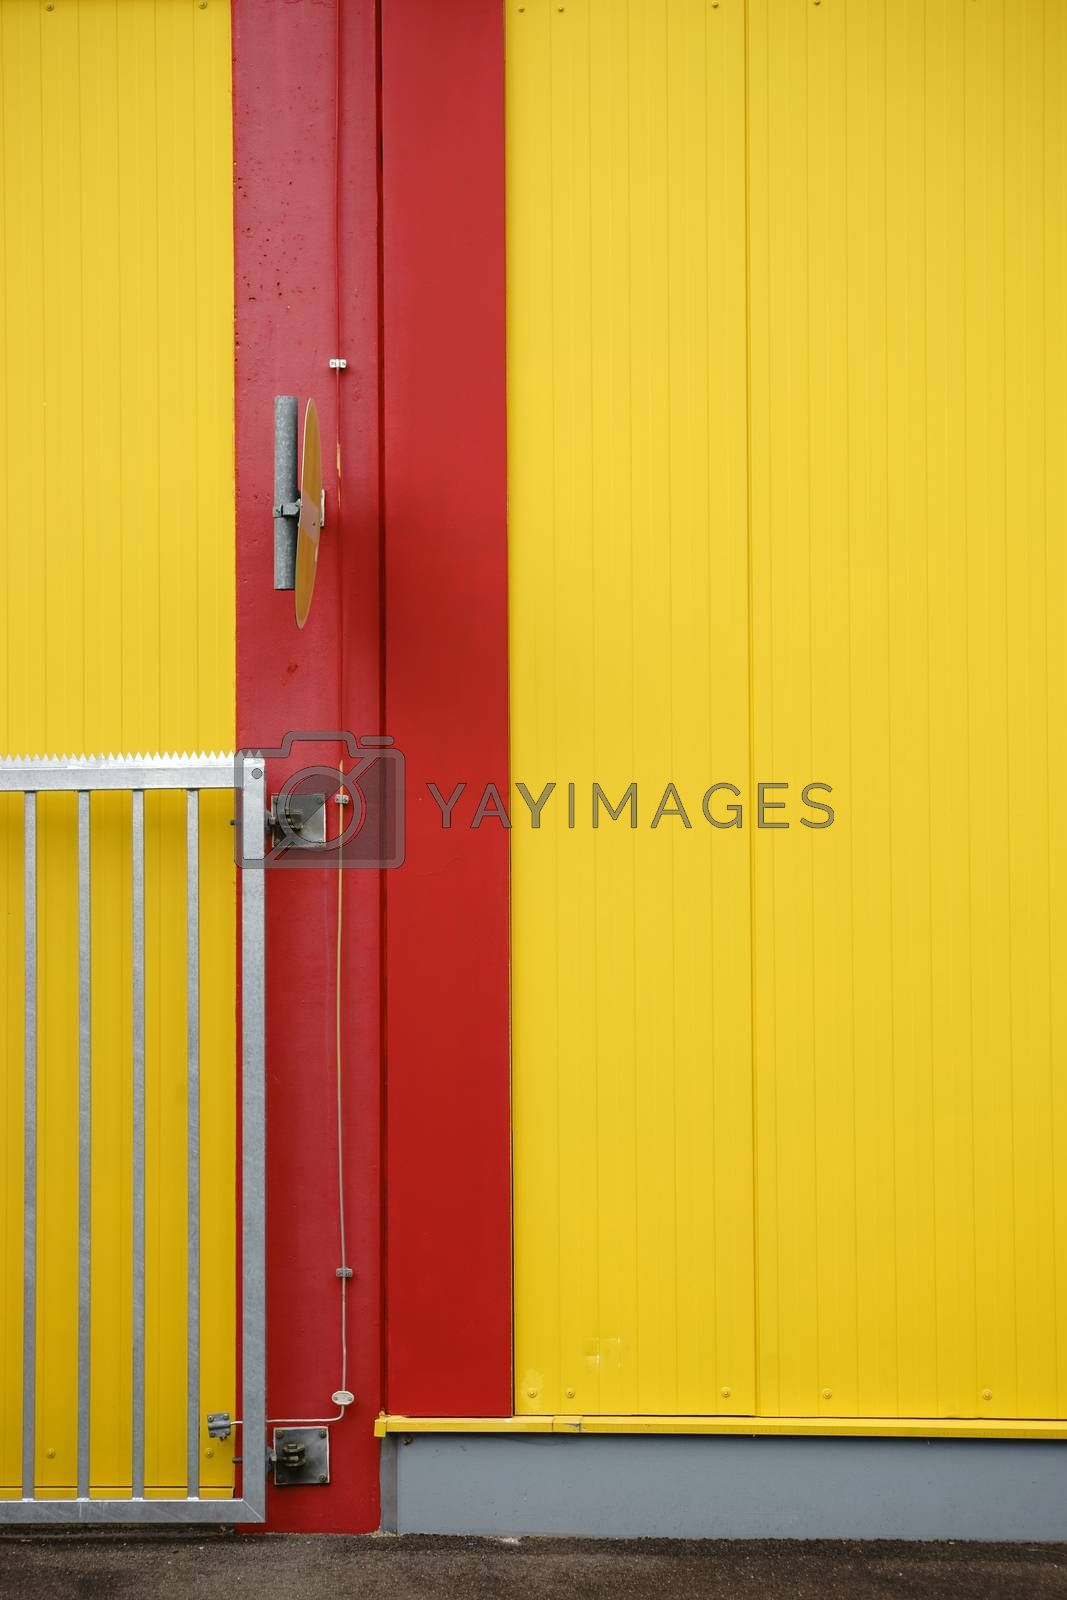 Royalty free image of Driveway mall by ginton